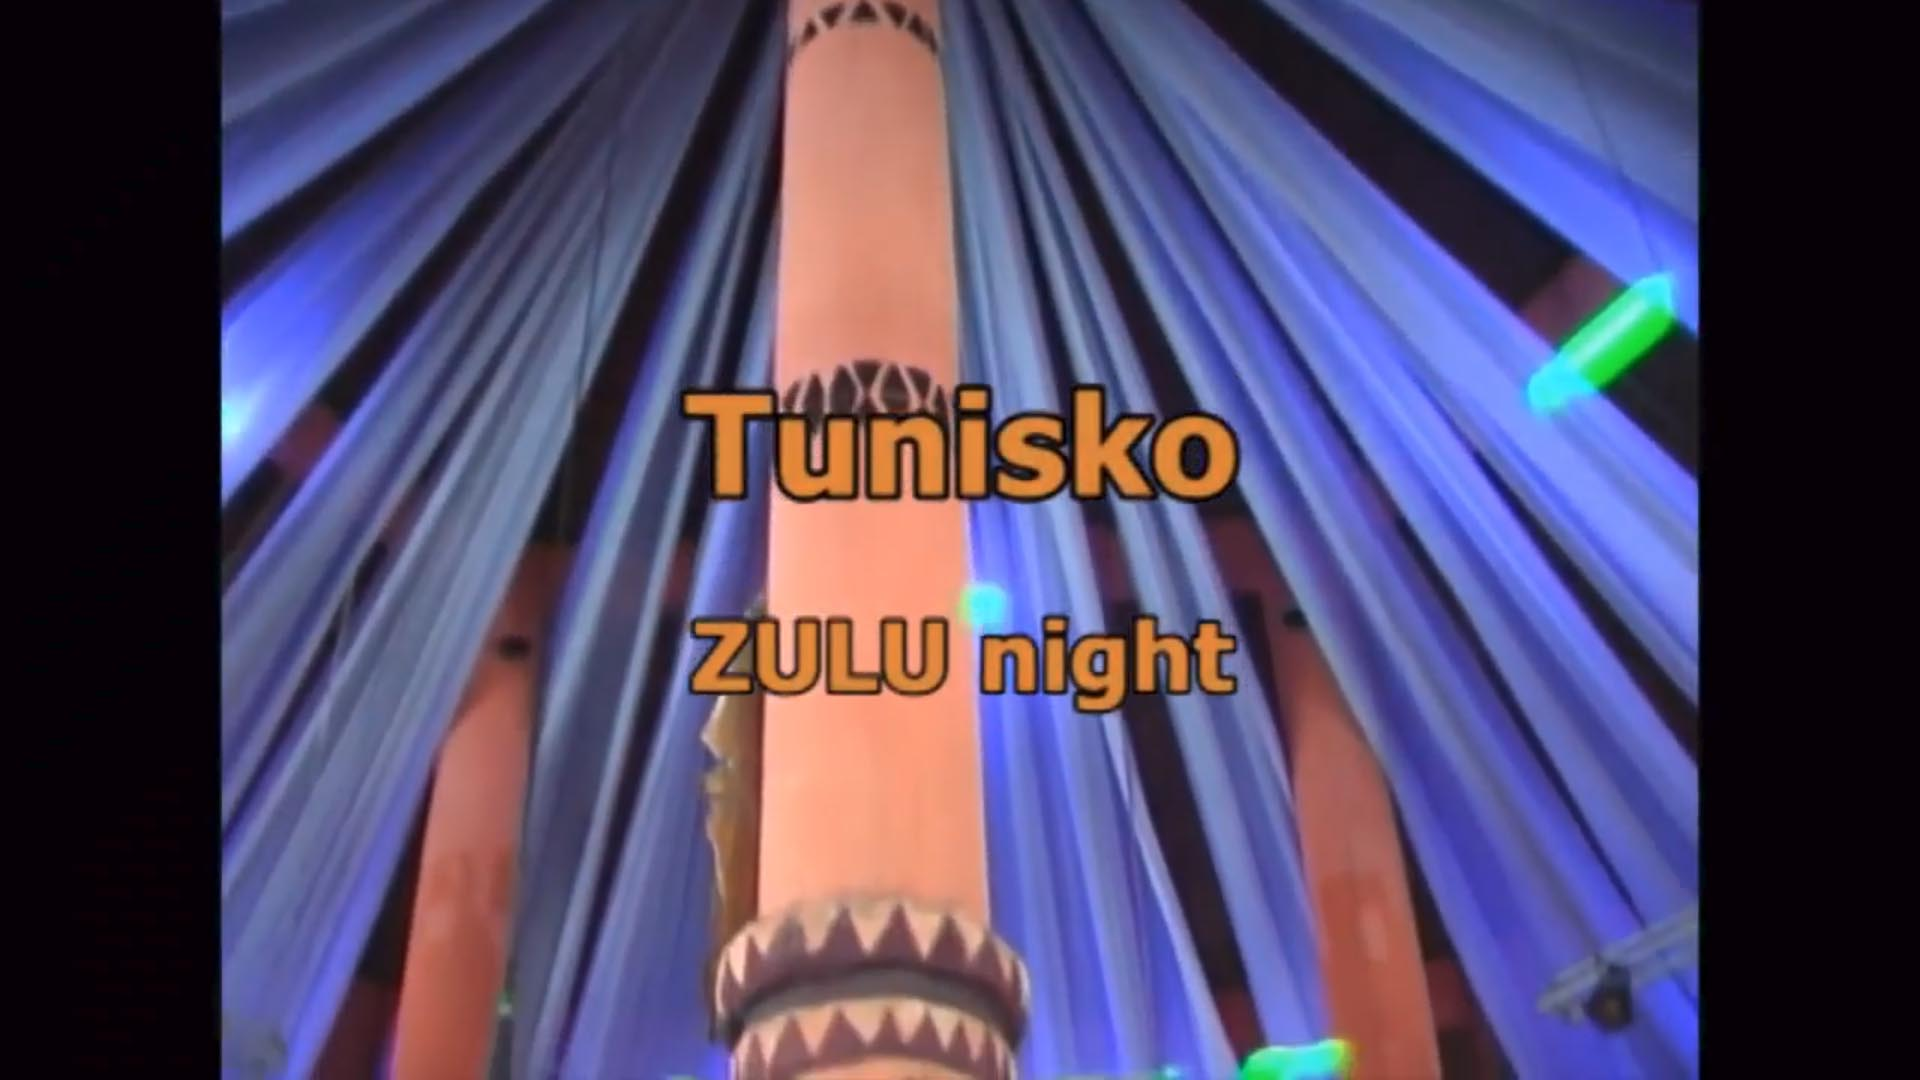 Tunisko – Zulu night